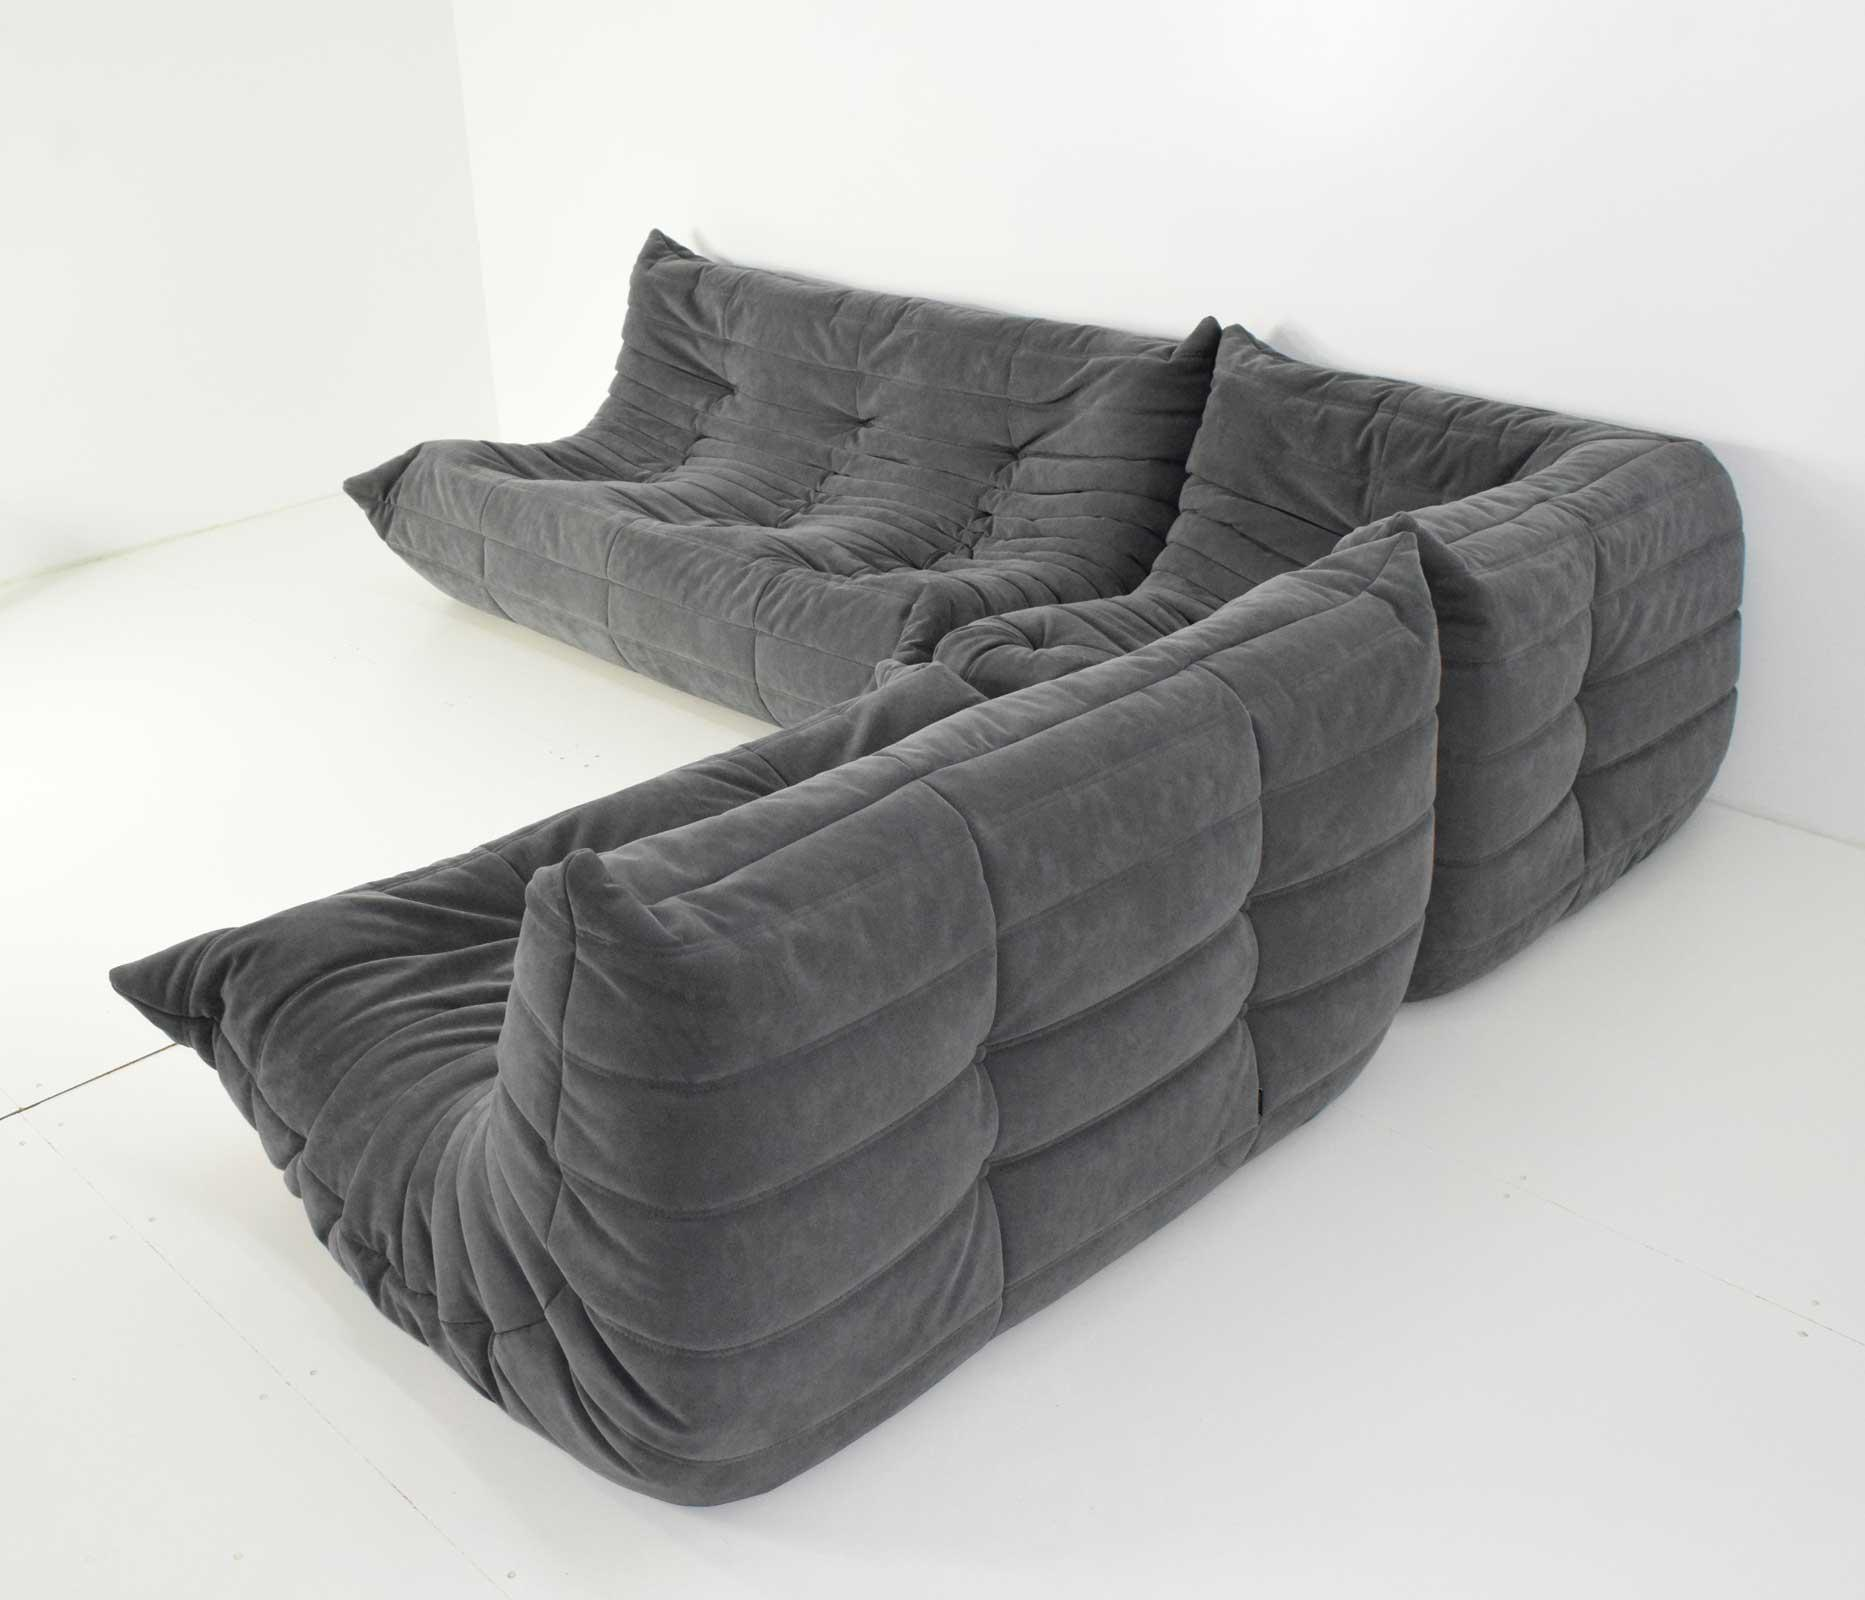 Ligne Roset Togo Sofa In Grey Suede By Michel Ducaroy   Image 4 Of 10